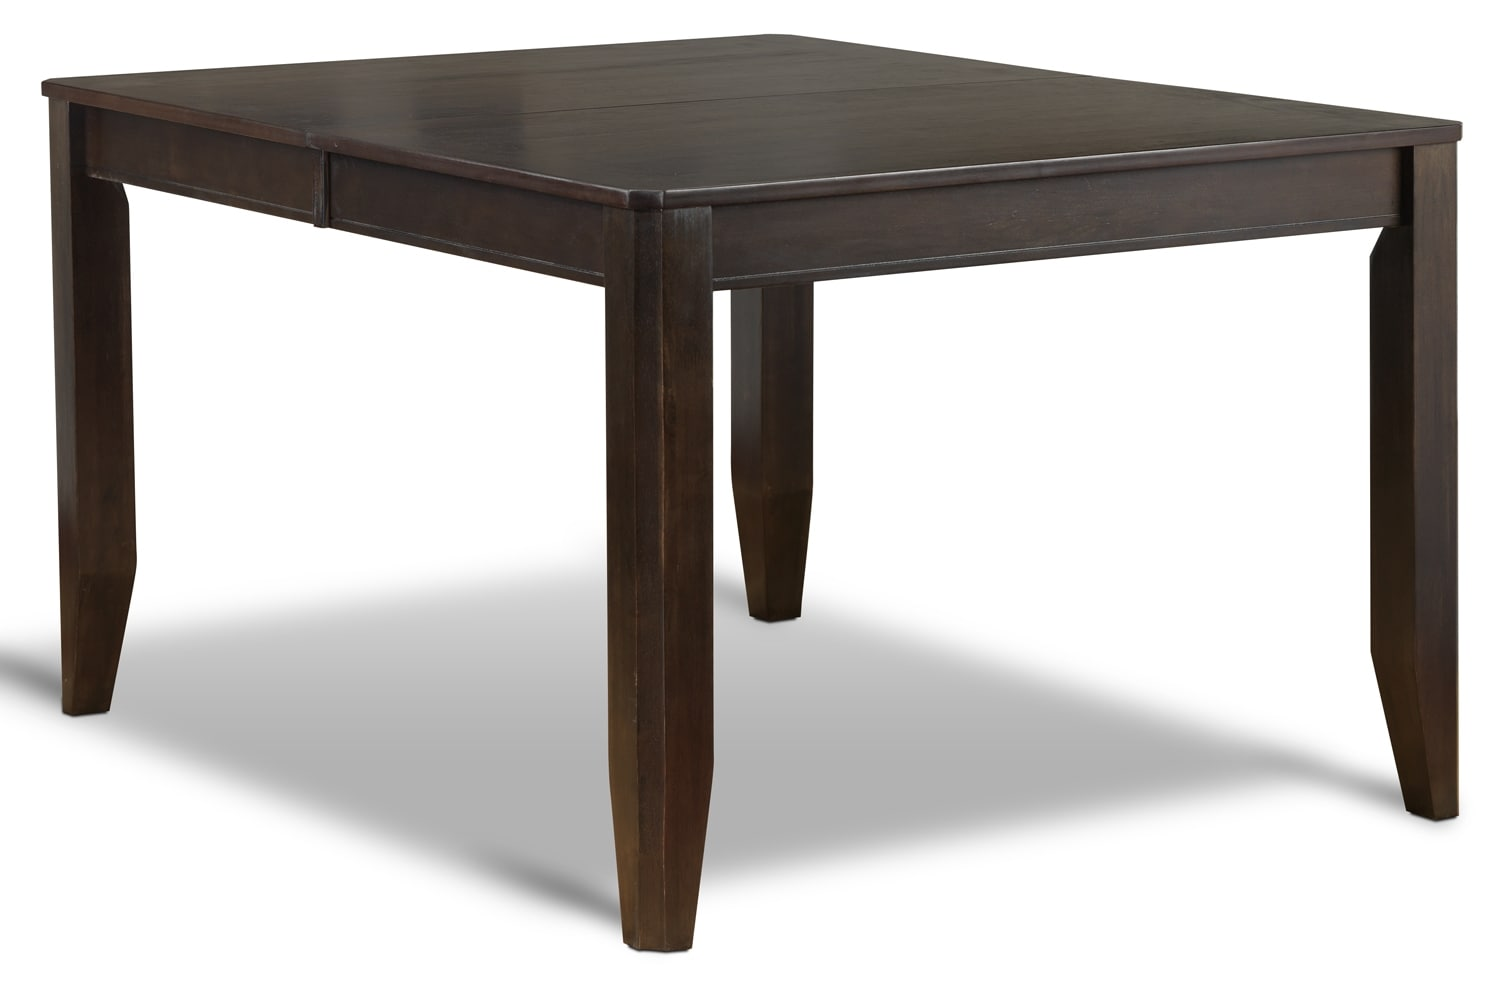 Casual Dining Room Furniture - Gina Table